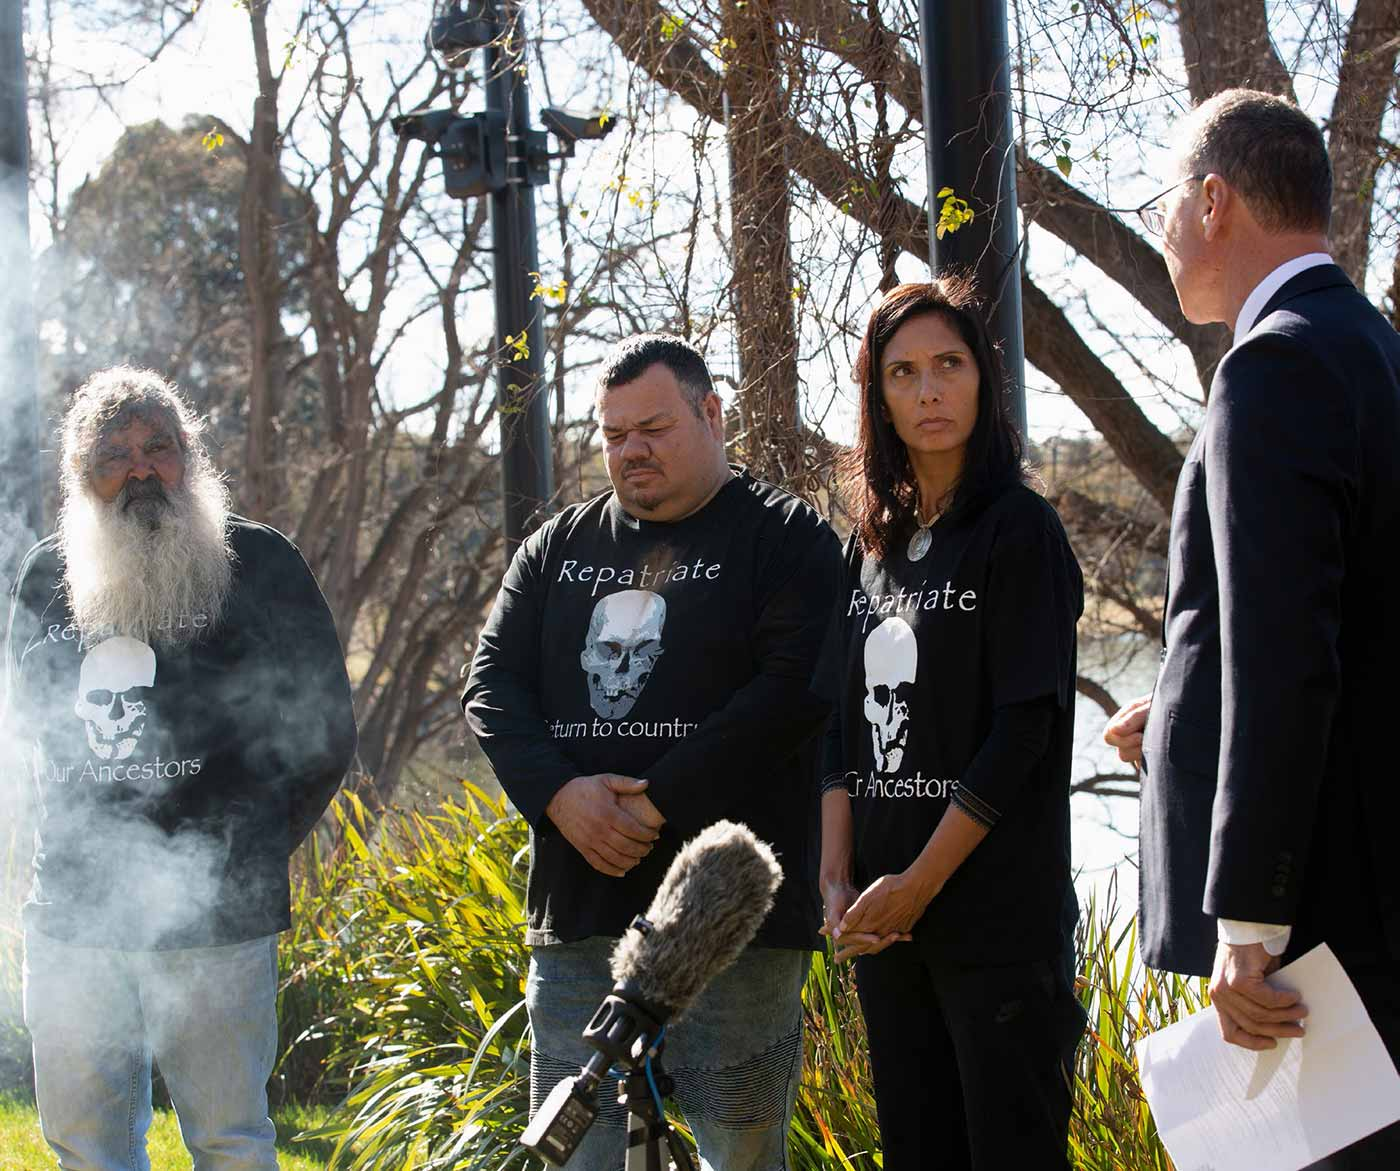 Photo of four people standing in the garden surrounded by smoke and media equipment.